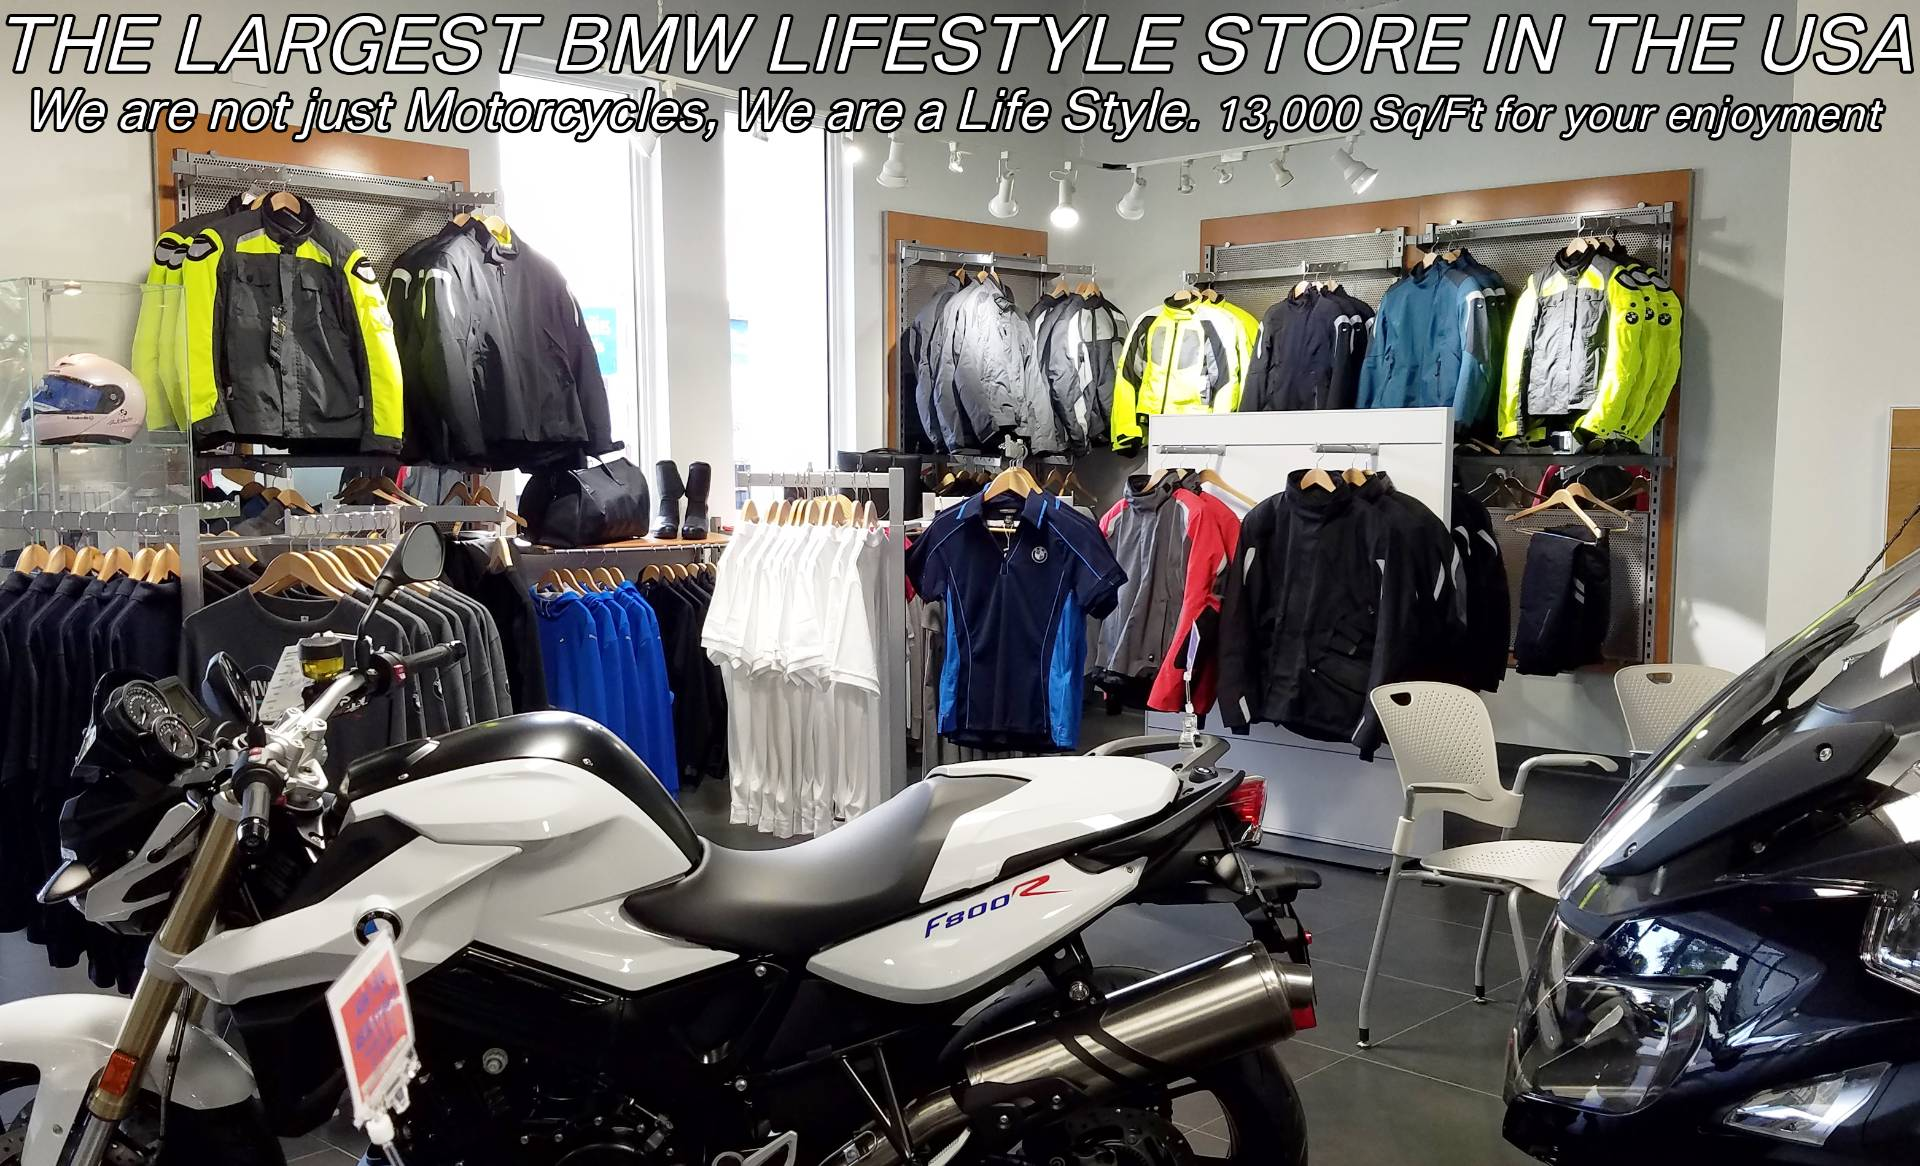 Used 2011 BMW R 1200 GSA For Sale, Pre owned BMW R 1200GSA For Sale, BMW Motorcycle R1200GSA, BMW Motorcycles of Miami, Motorcycles of Miami, Motorcycles Miami - Photo 31